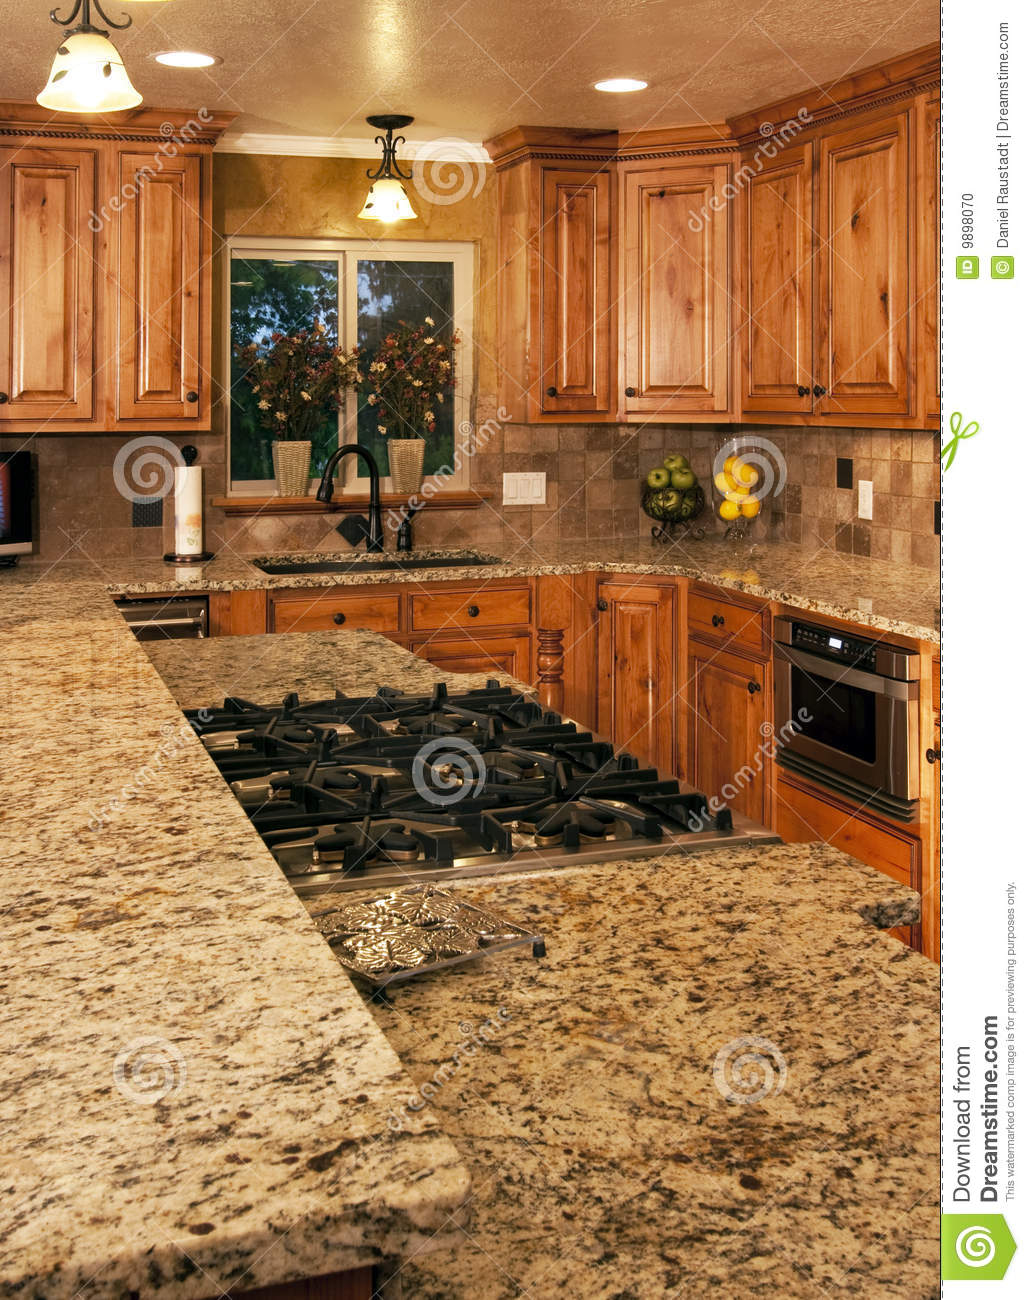 New kitchen two level center island stock photo image for Two level kitchen island